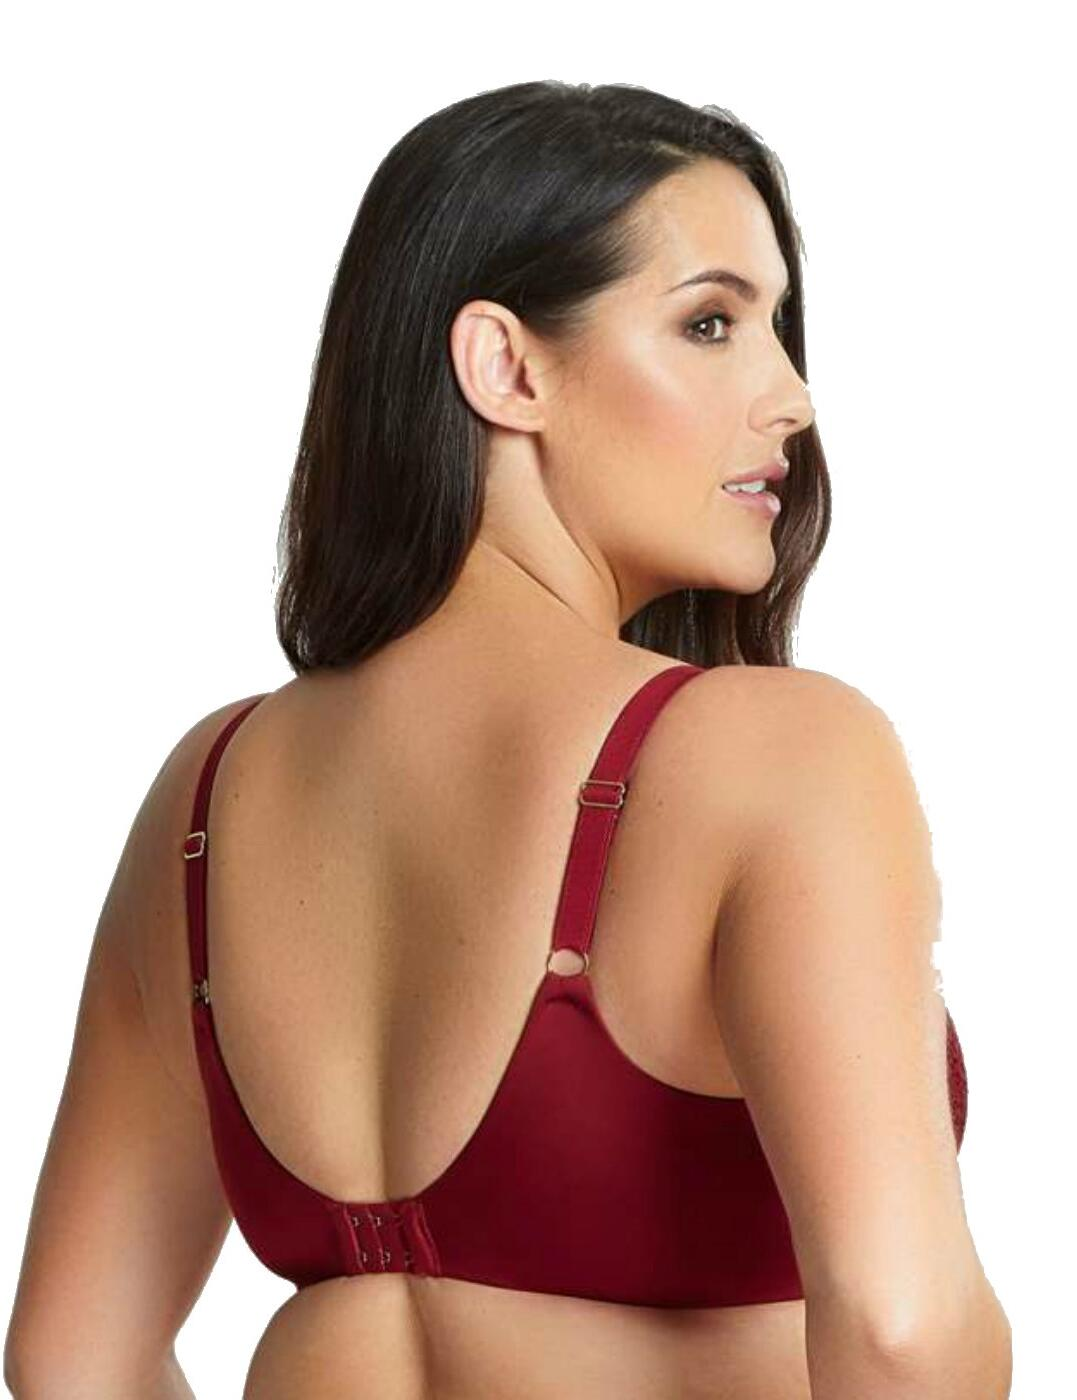 Sculptresse-by-Panache-Estel-Bra-9685-Underwired-Supportive-Full-Cup-Lingerie thumbnail 5